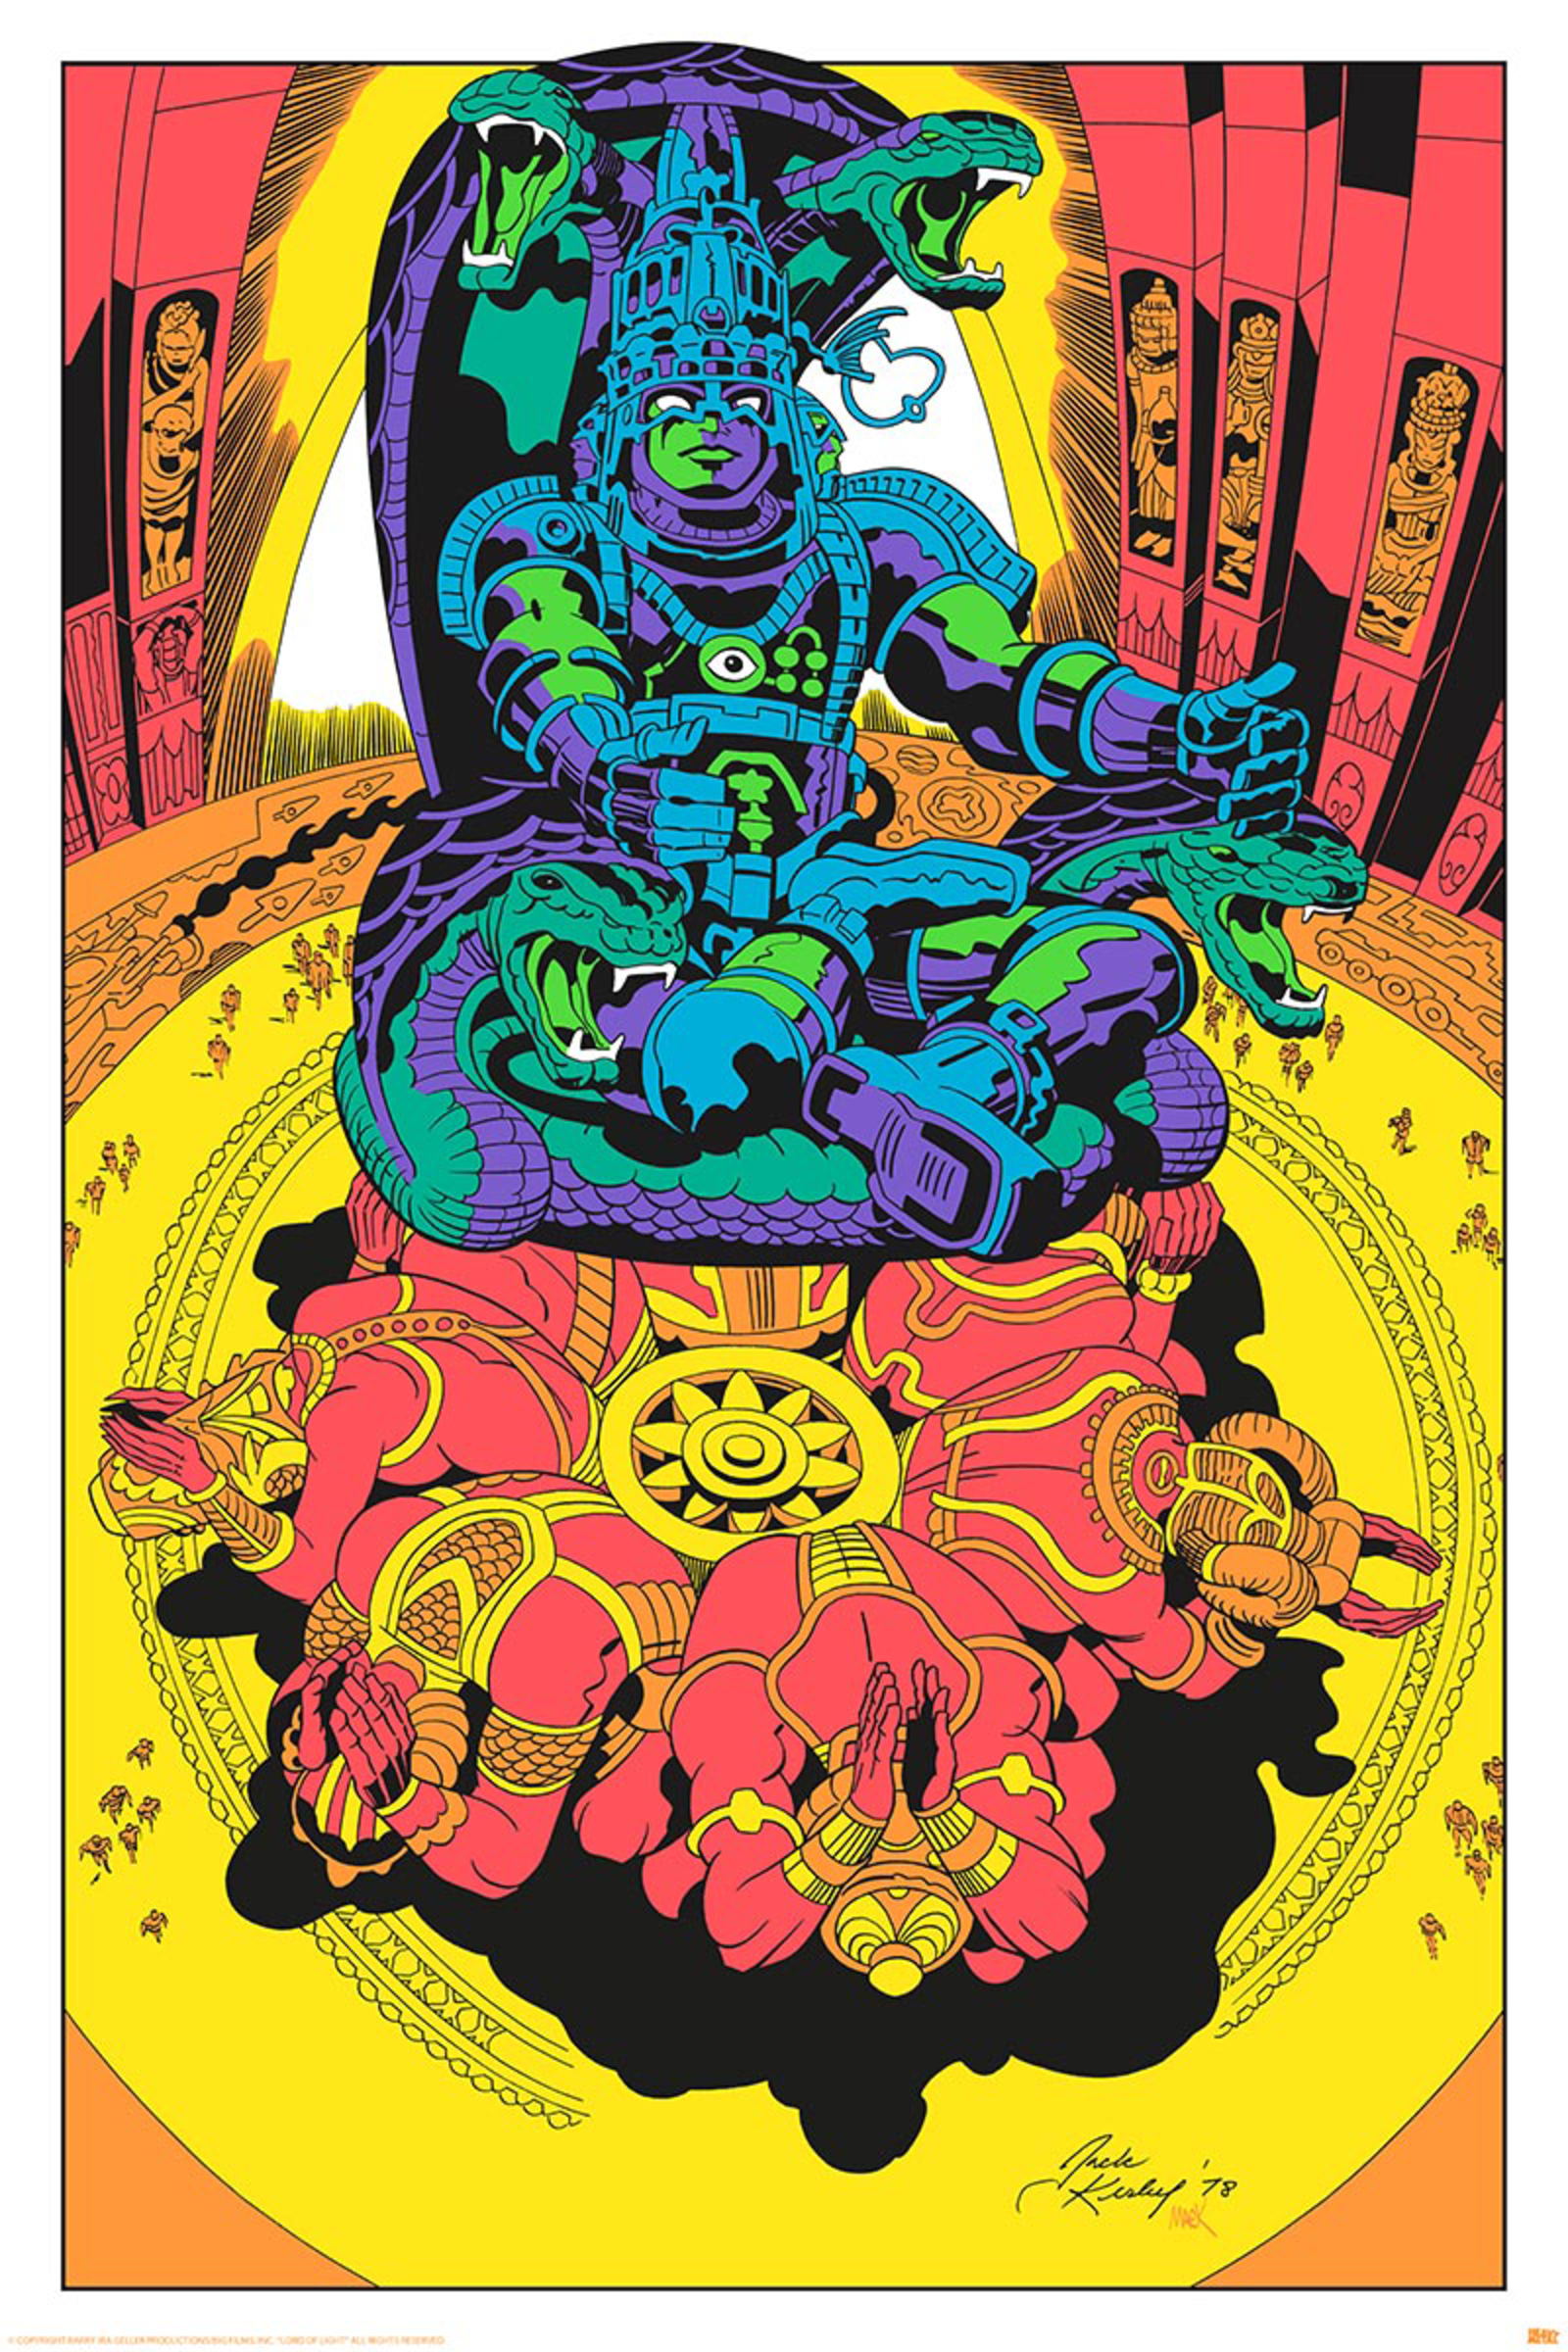 Behold The Psychedelic Glory Of Jack Kirby's Argo Art, In Color At Last ross marvel frost four ramo